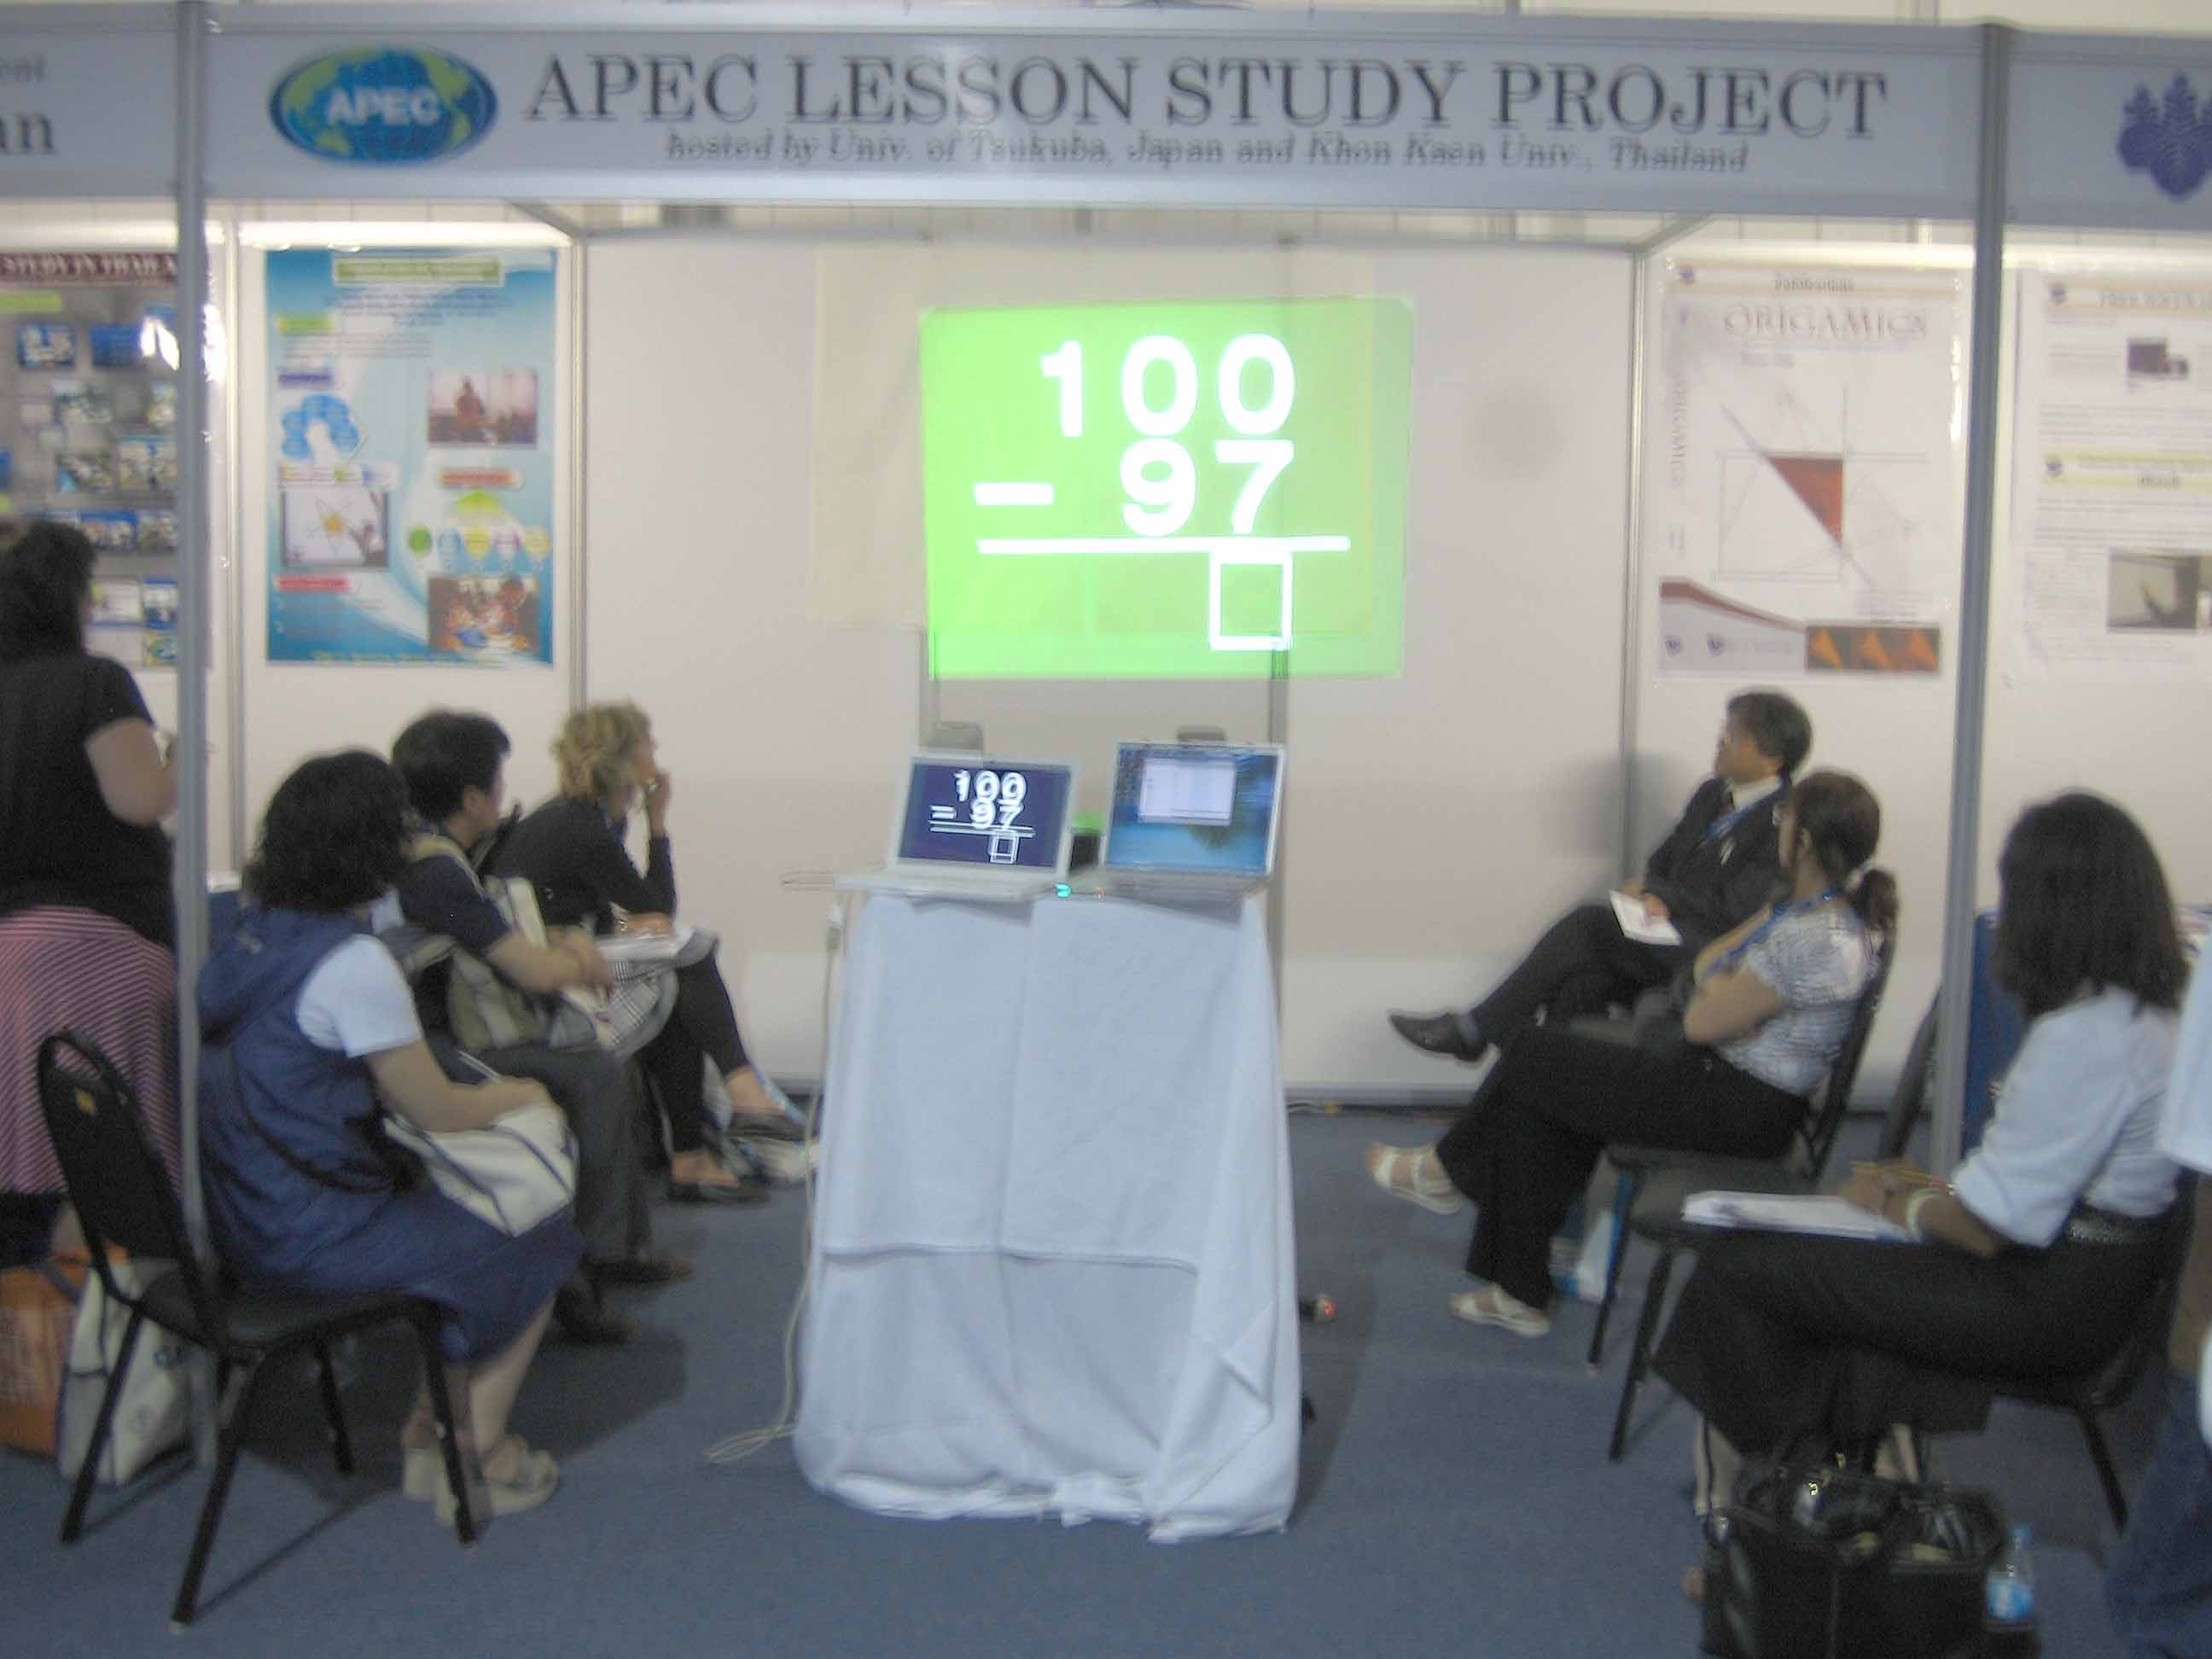 PPT - ISODA, Masami Director, APEC Lesson Study Project ...